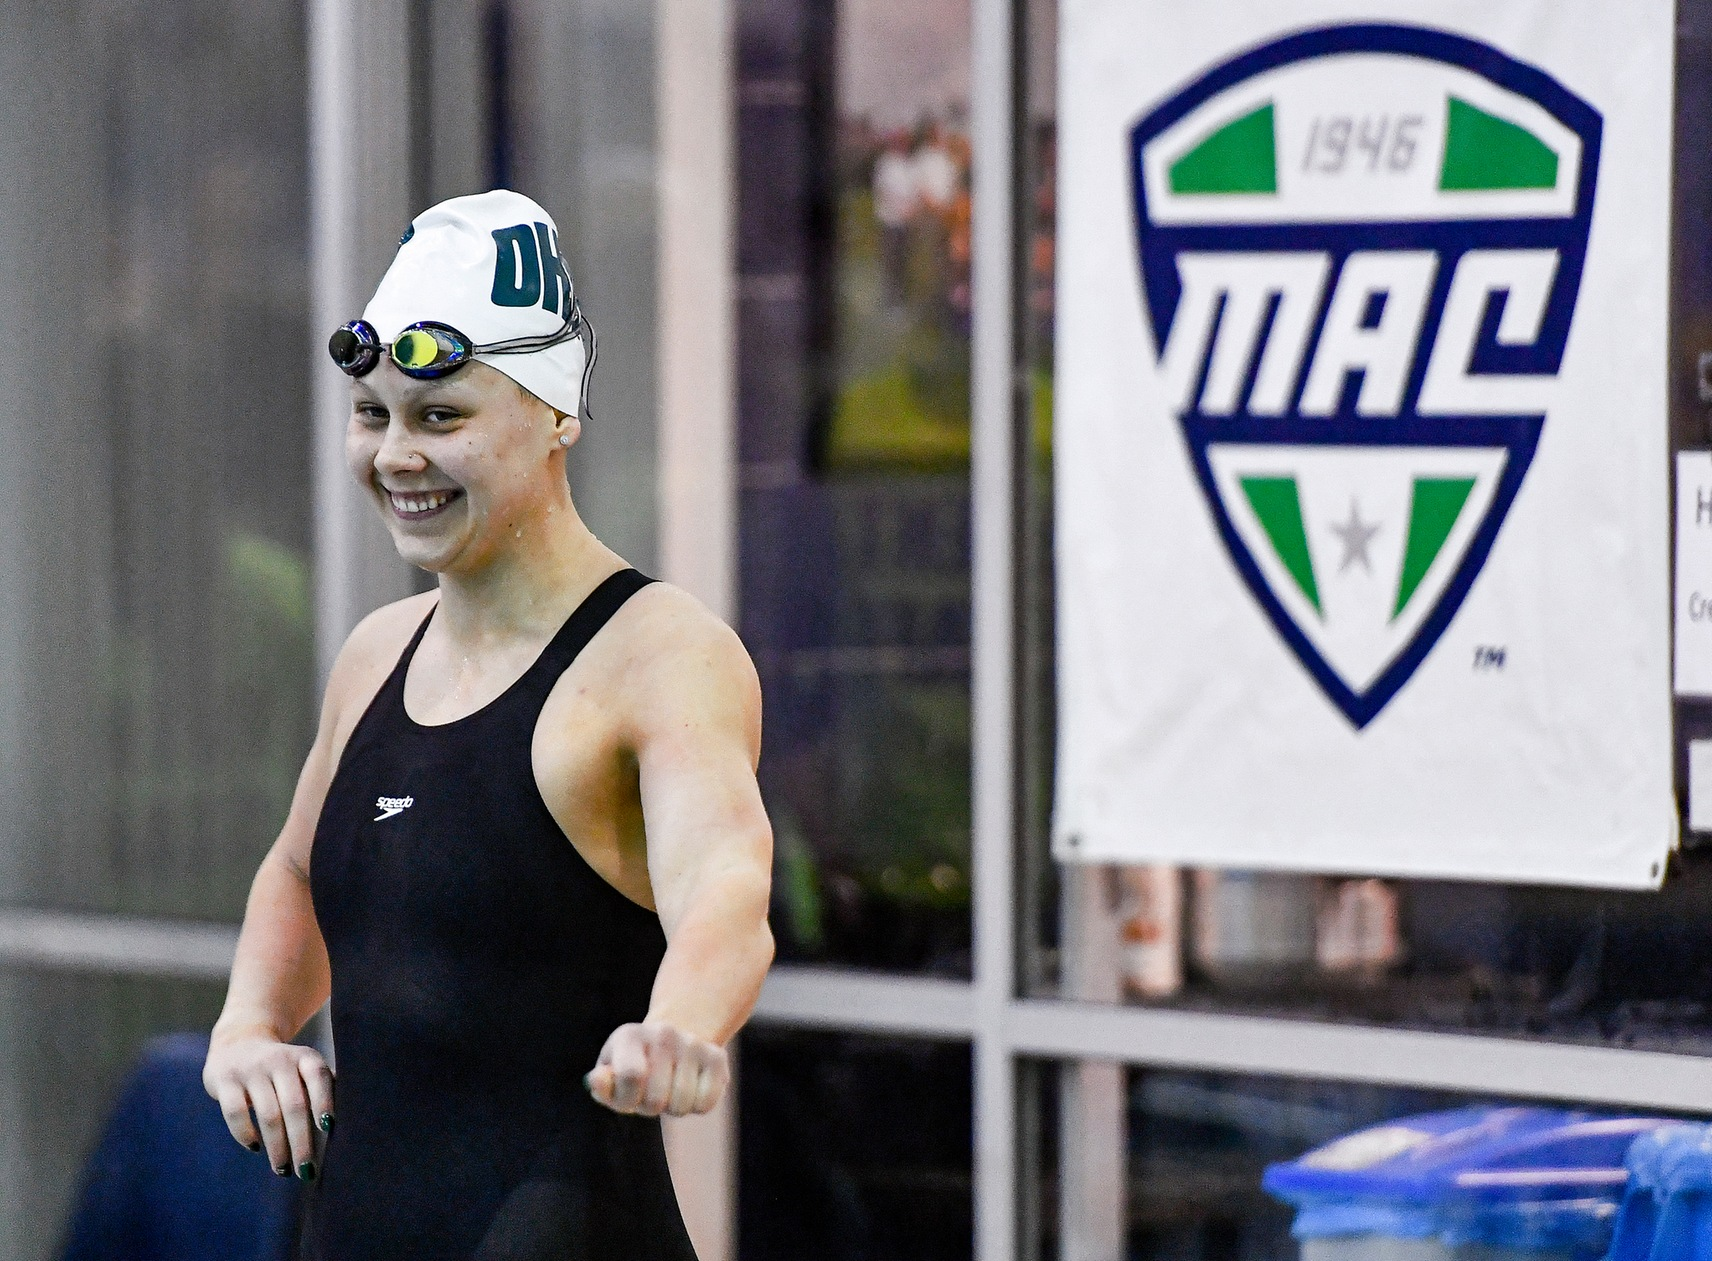 Ohio Tallies Four Individual Podium Finishes on Third Day of 2020 MAC Swimming & Diving Championships